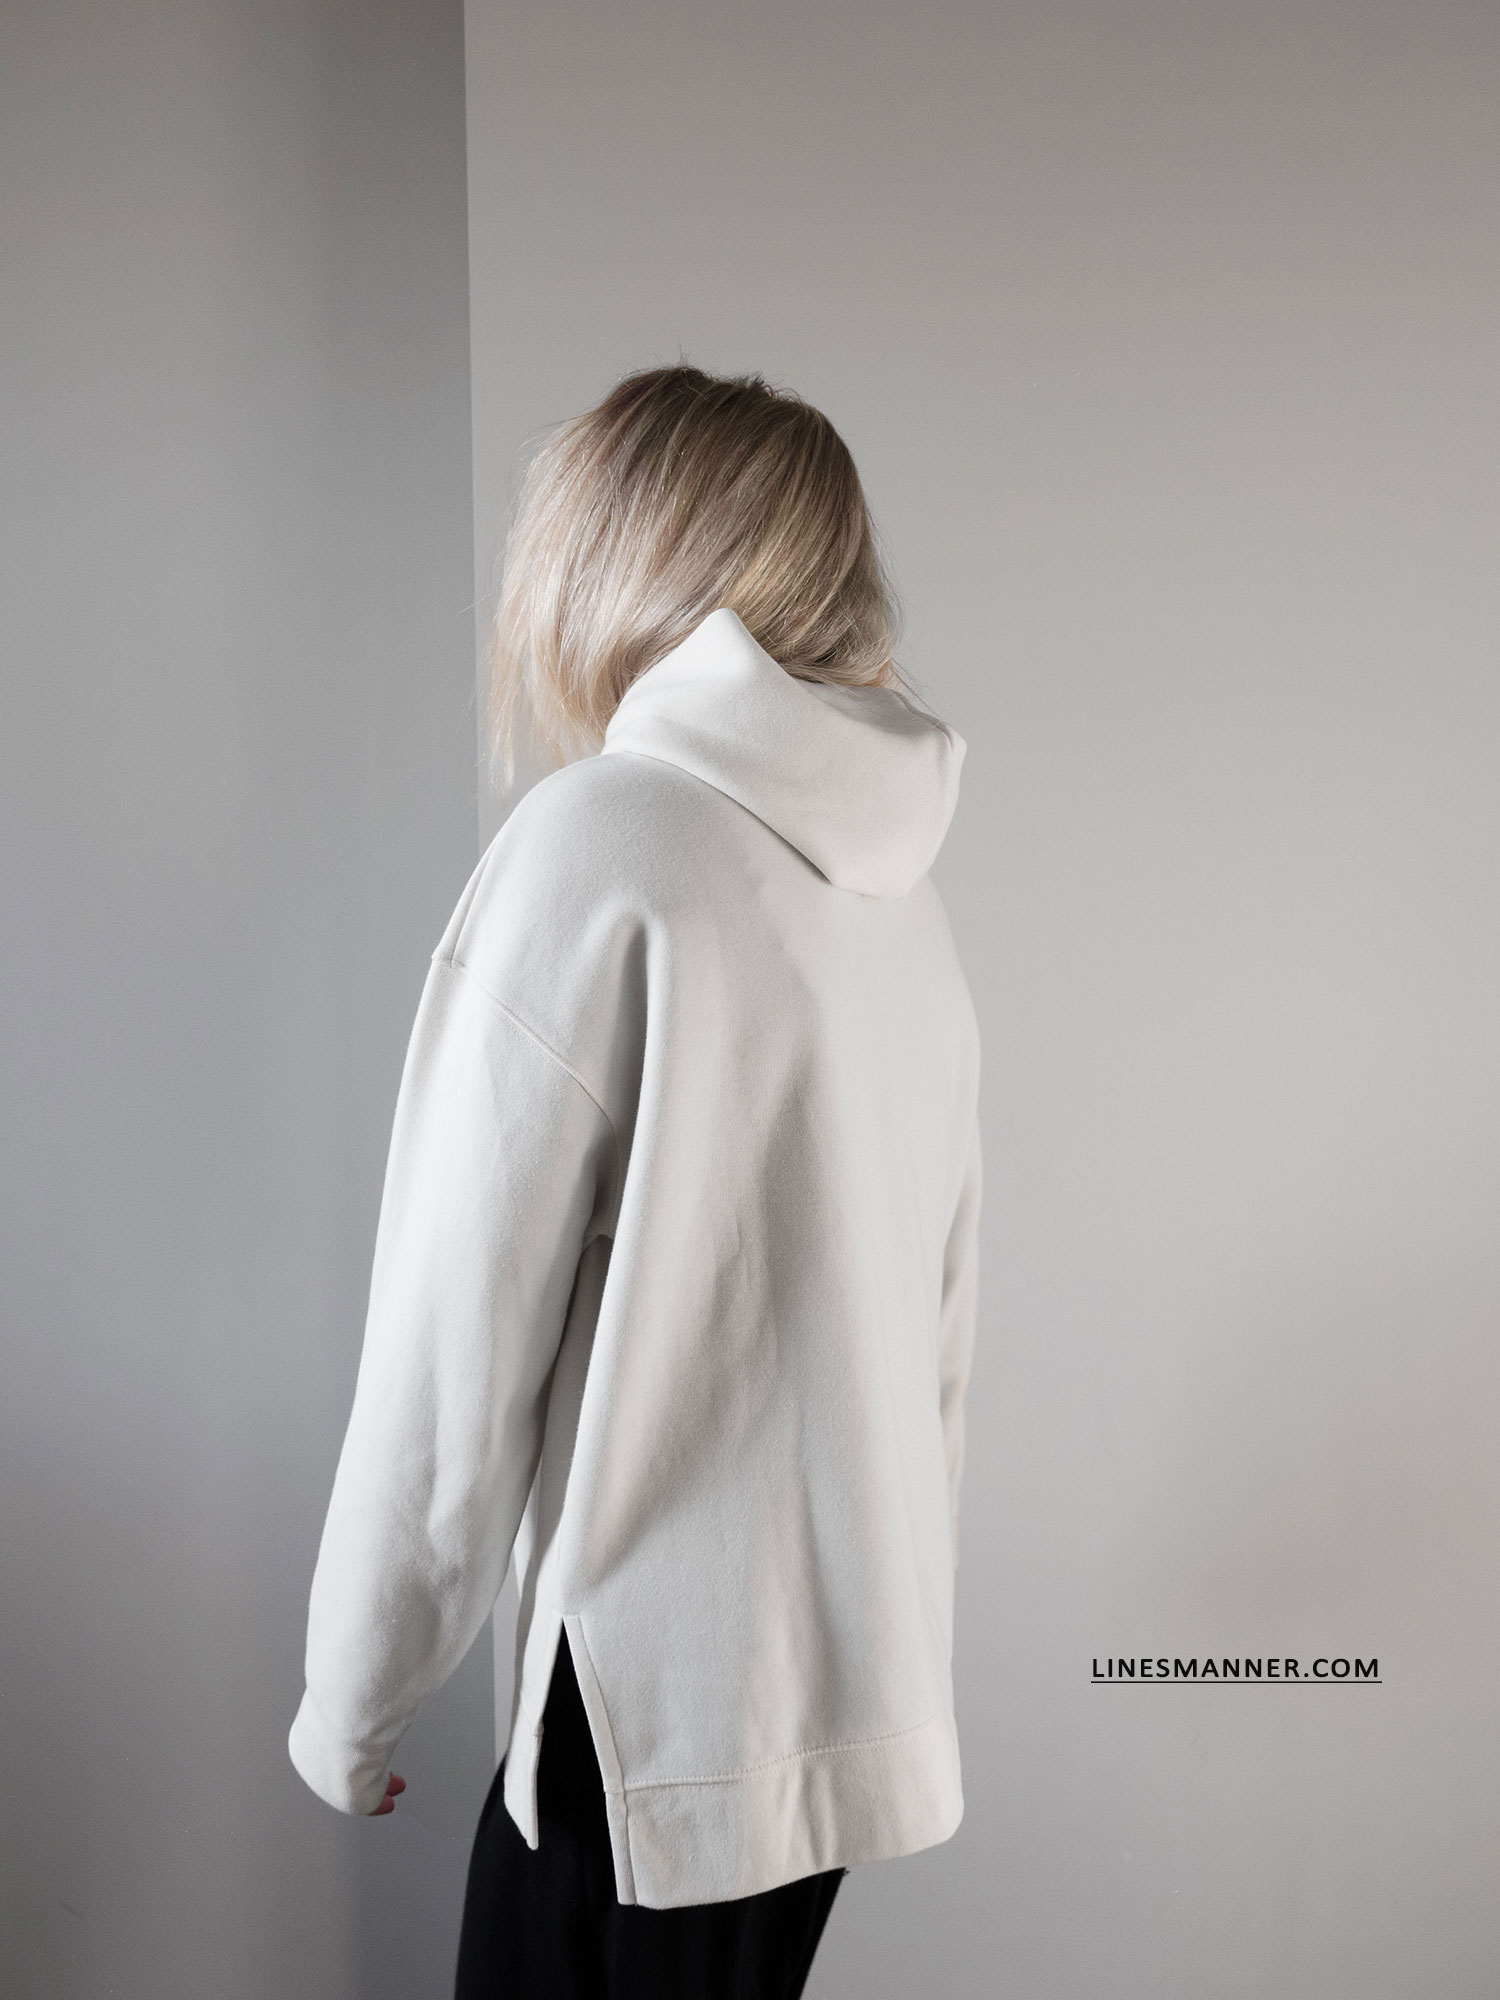 Lines_Manner-Hoodie-Minimal_Outfit-Maxi_Dress-Layering-Effortless-Sporty_Chic-Quality-Uniqlo-1